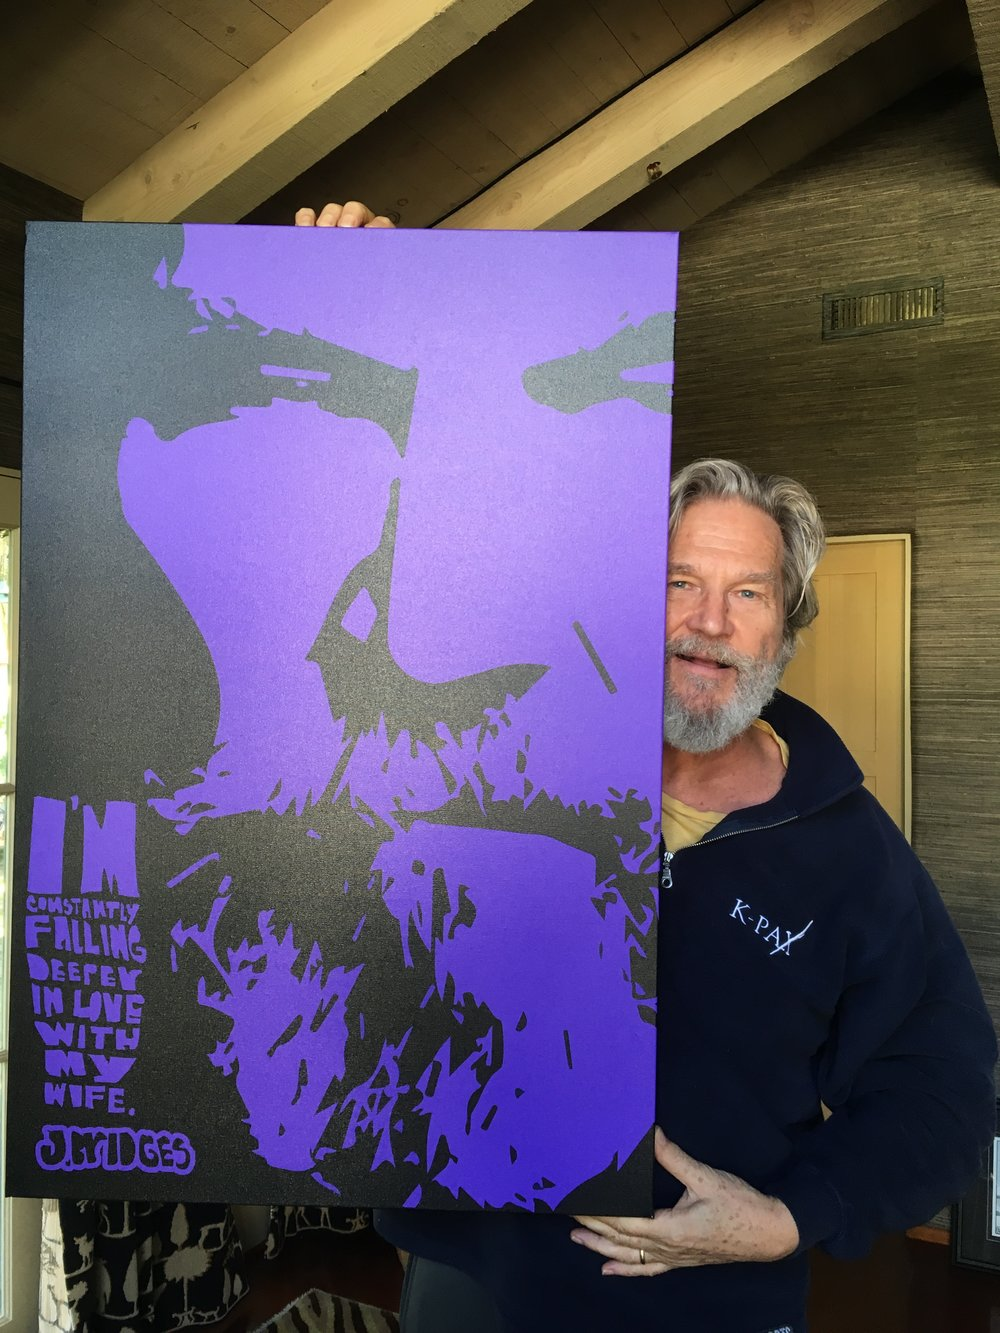 a piece that I did for Jeff Bridges